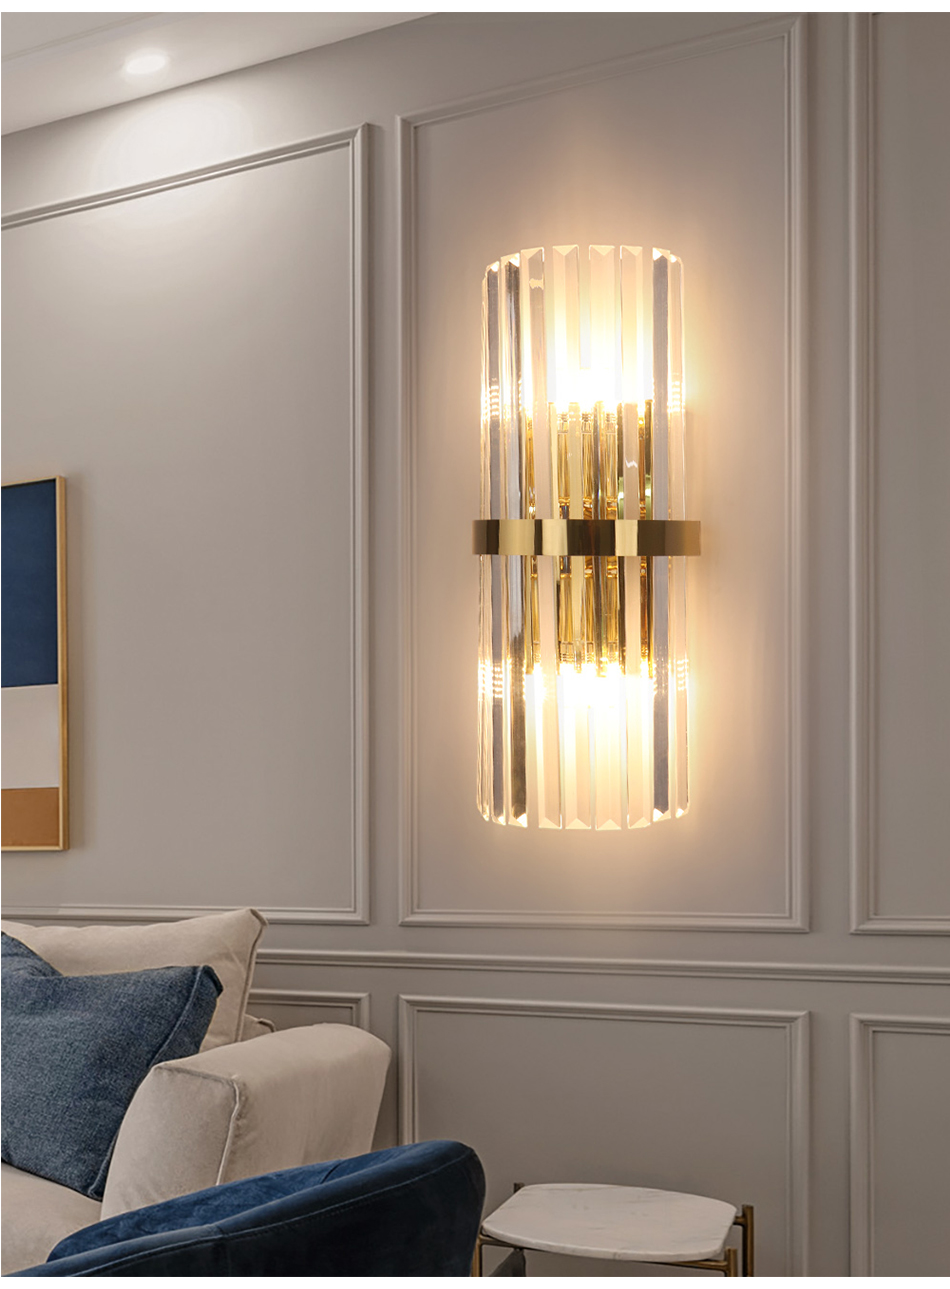 Modern Led Crystal Wall Light Gold Home Decor Wall Lighting Fixture Bedroom Hallway Wall Sconce Lamp Fast Shipping Via Dhl Fedex Led Indoor Wall Lamps Aliexpress